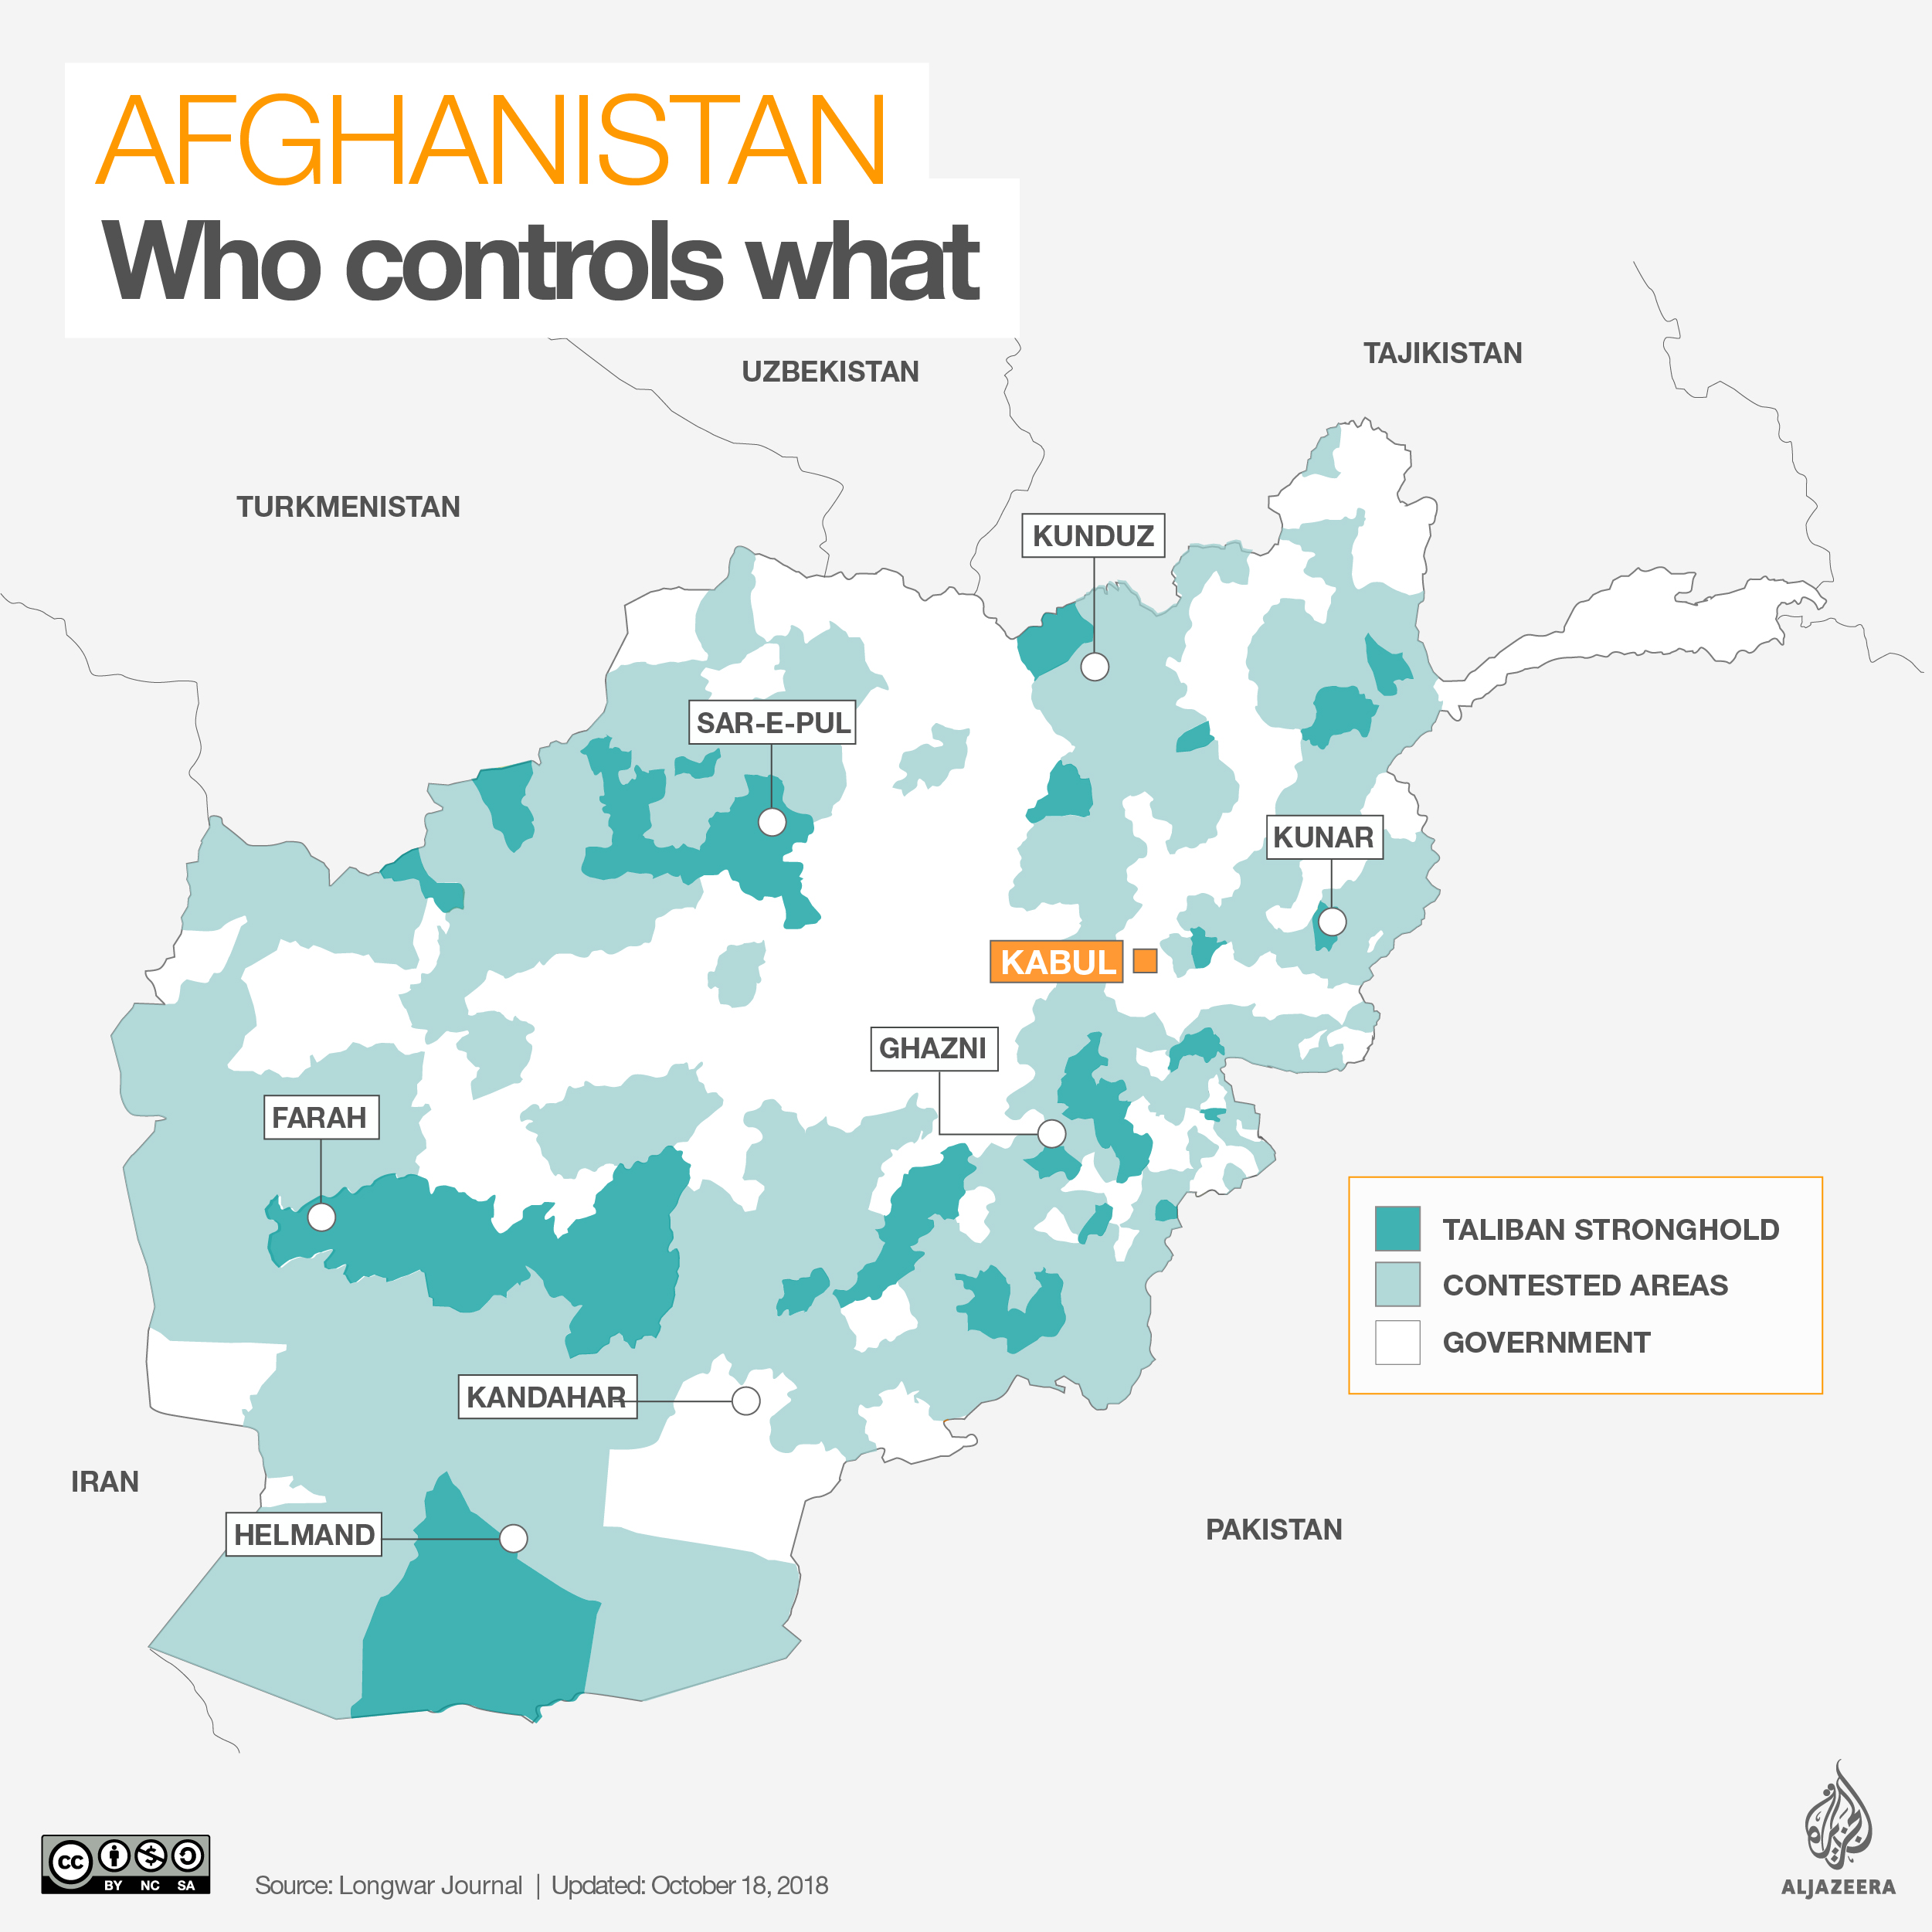 Watchdog: Afghanistan at 'Lowest Level' of Territorial Control amid Taliban Pressure